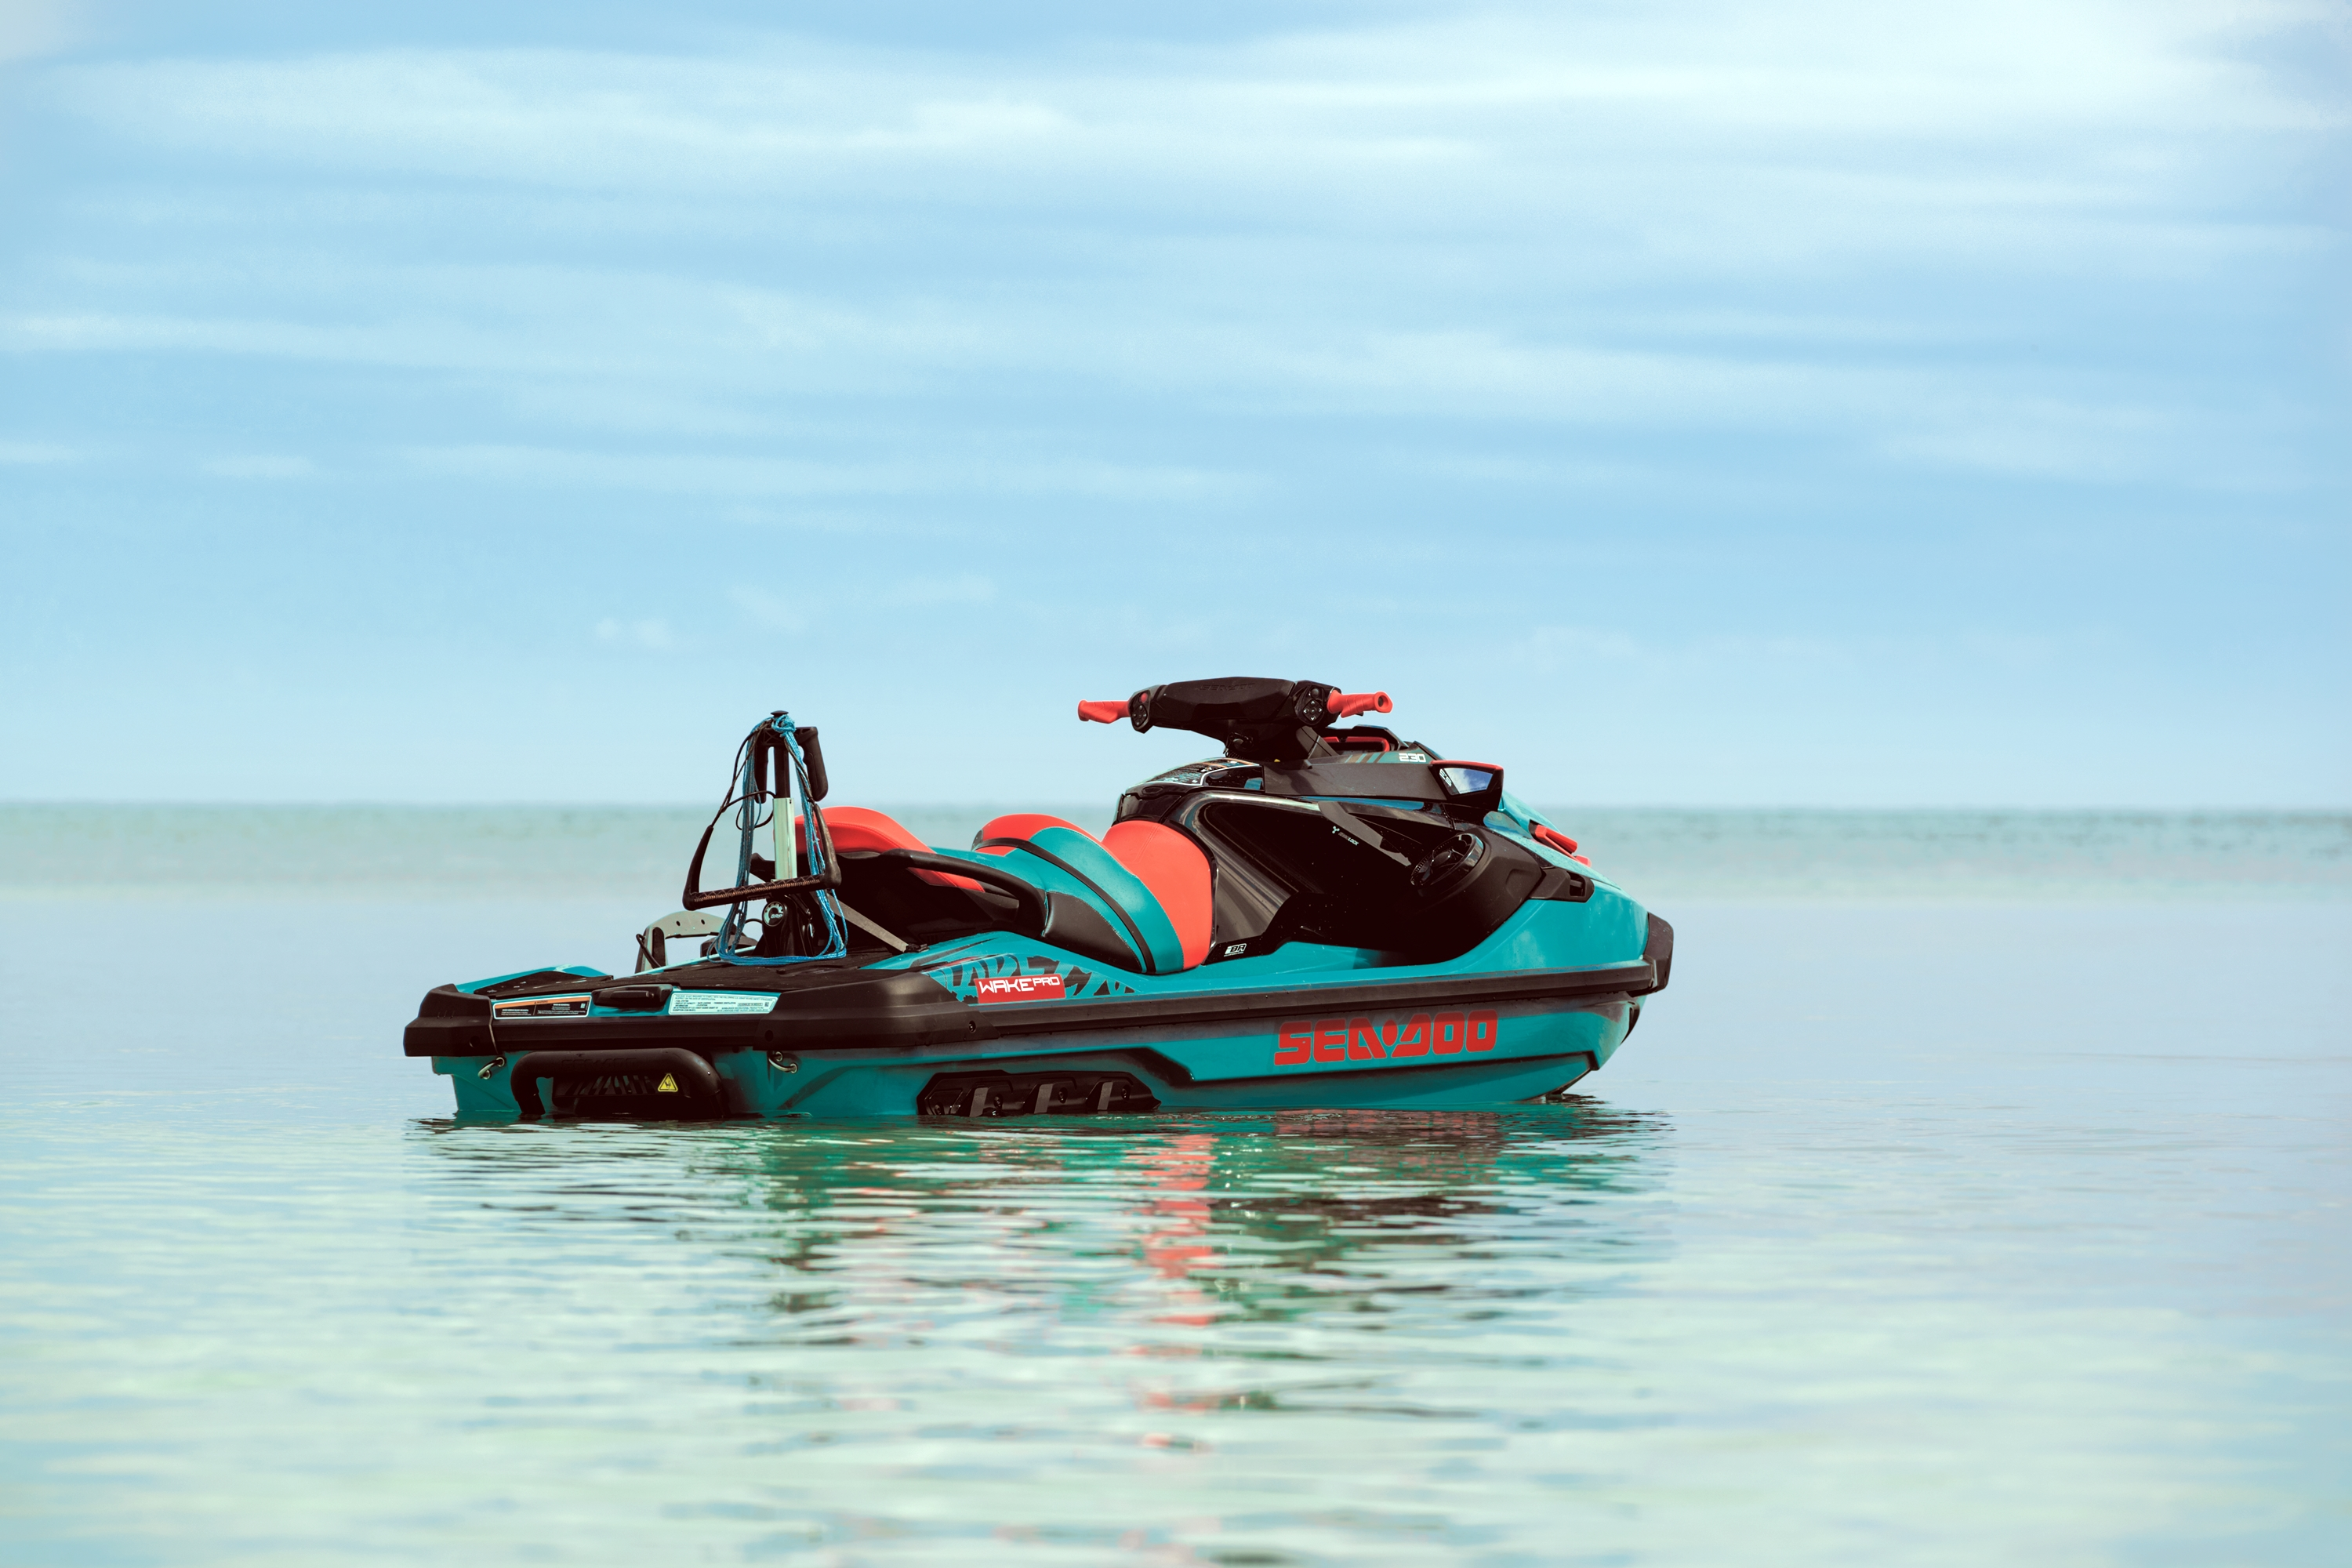 2018 Sea Doo Wake Models Sea Doo Onboard